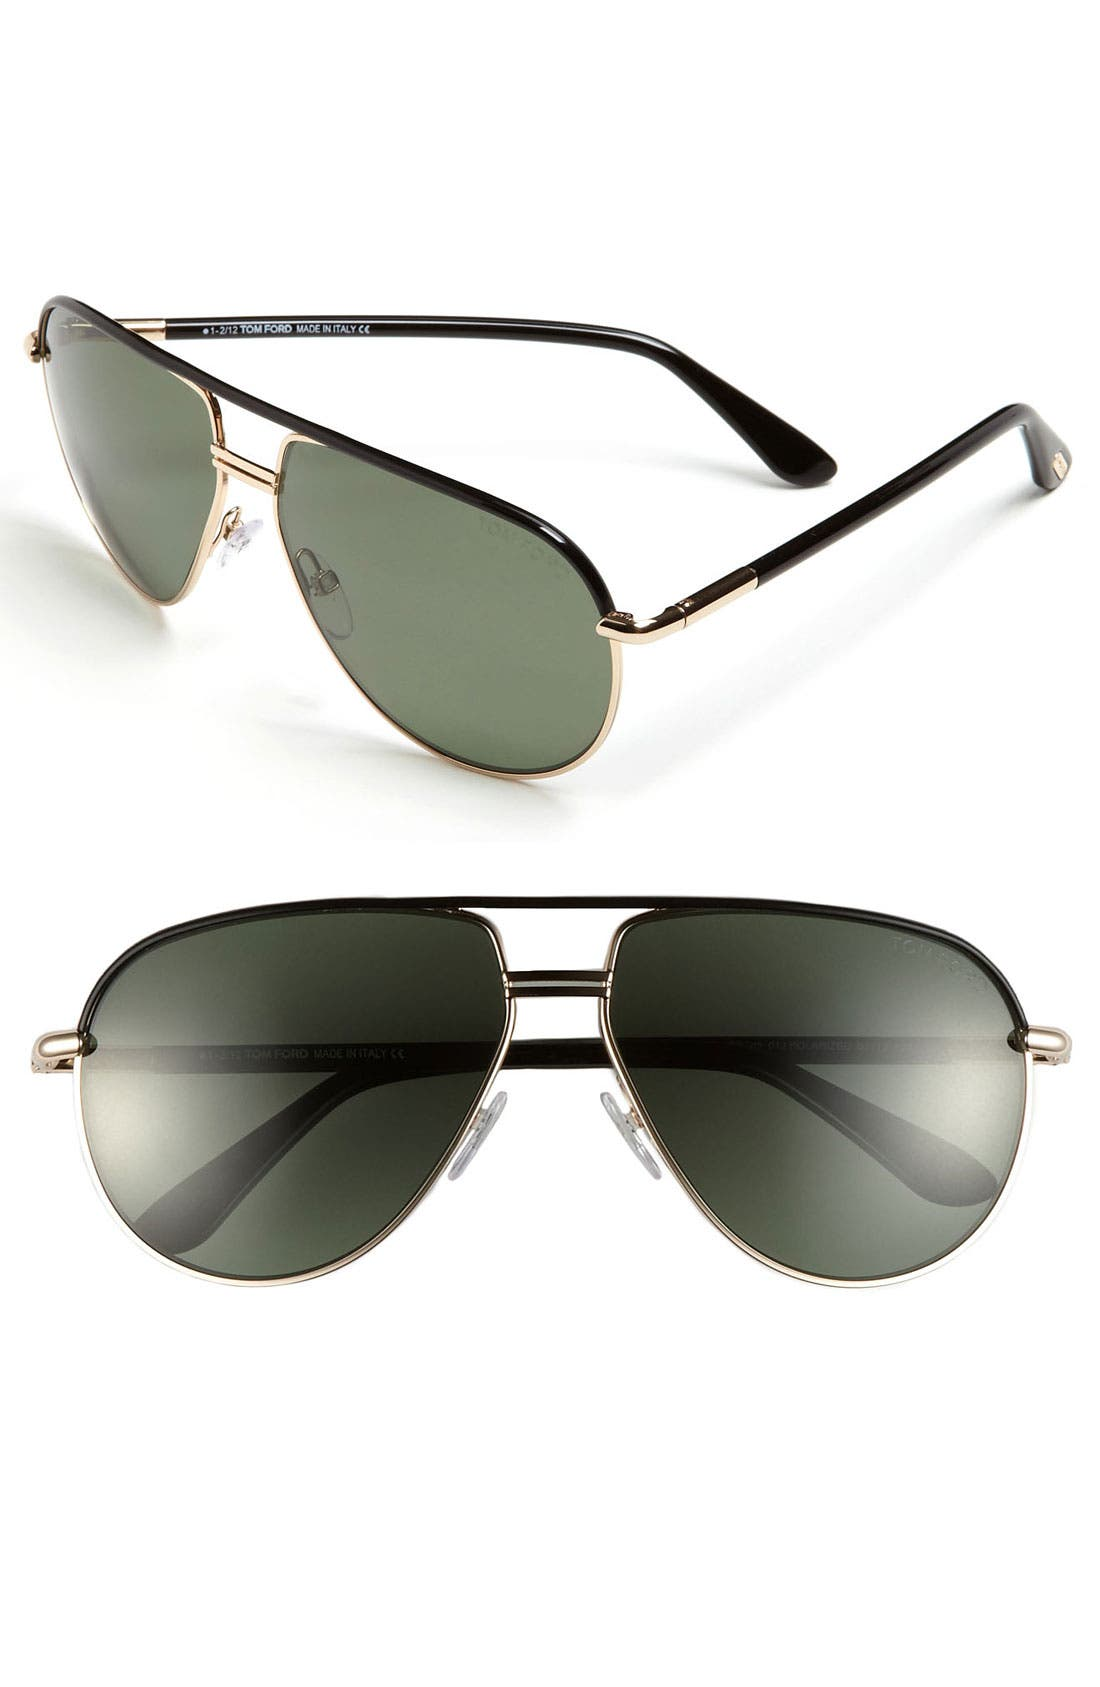 Main Image - Tom Ford 'Cole' 61mm Polarized Aviator Sunglasses